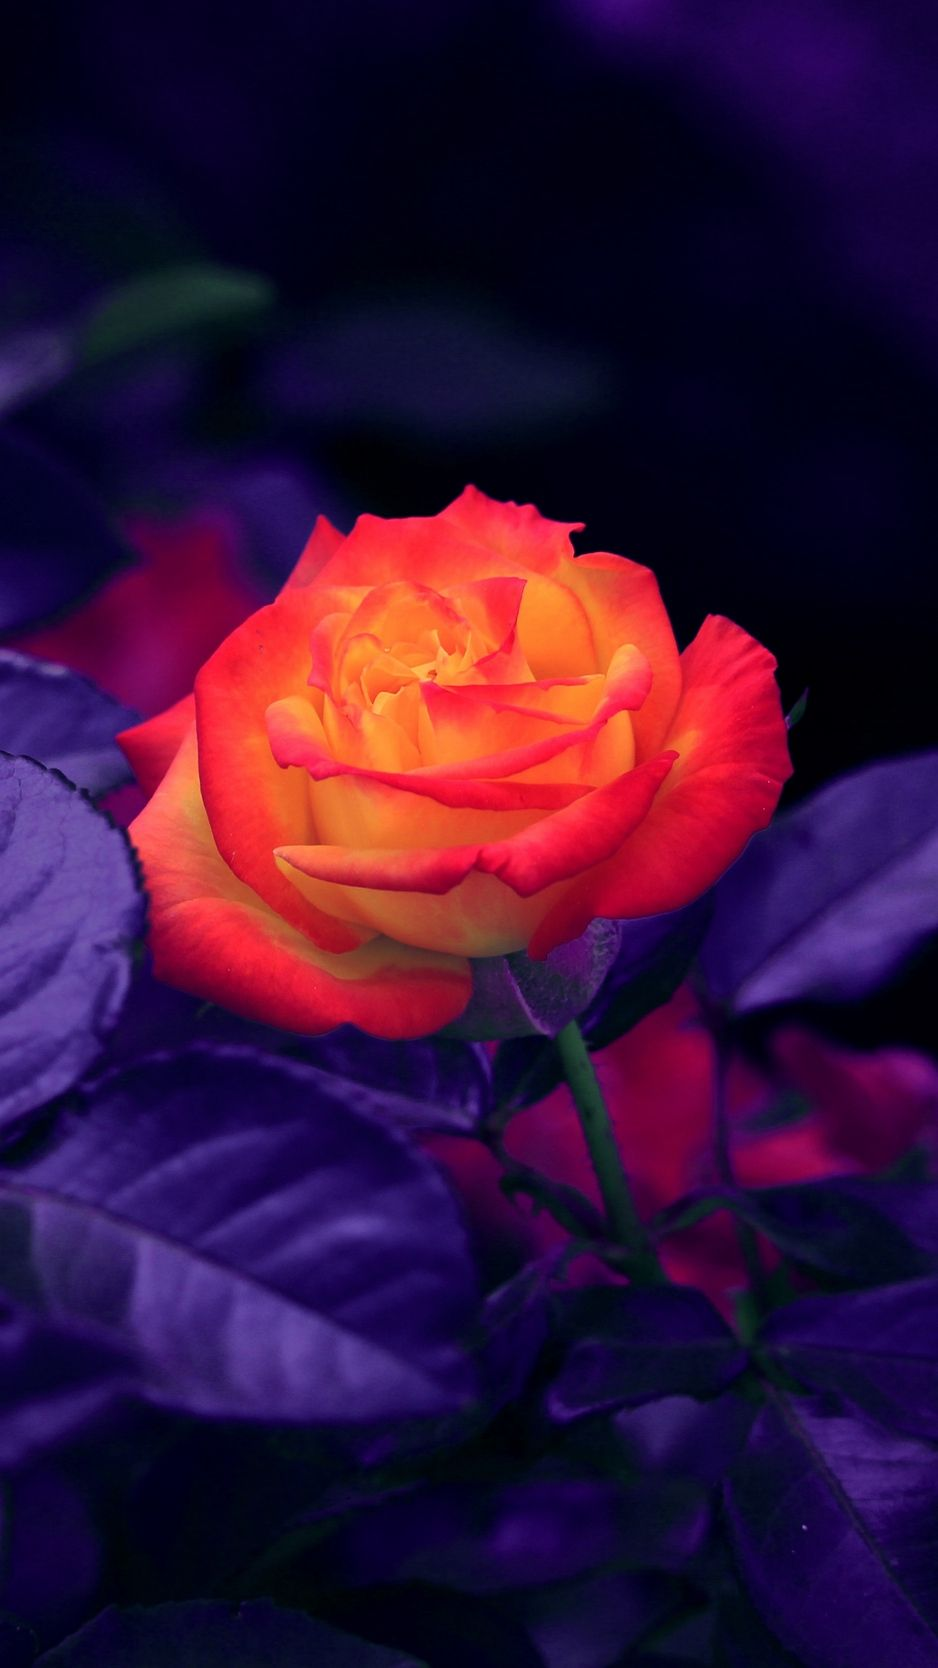 938x1668 Download wallpaper 938x1668 rose, bud, orange, purple iphone 8/7/6s ...